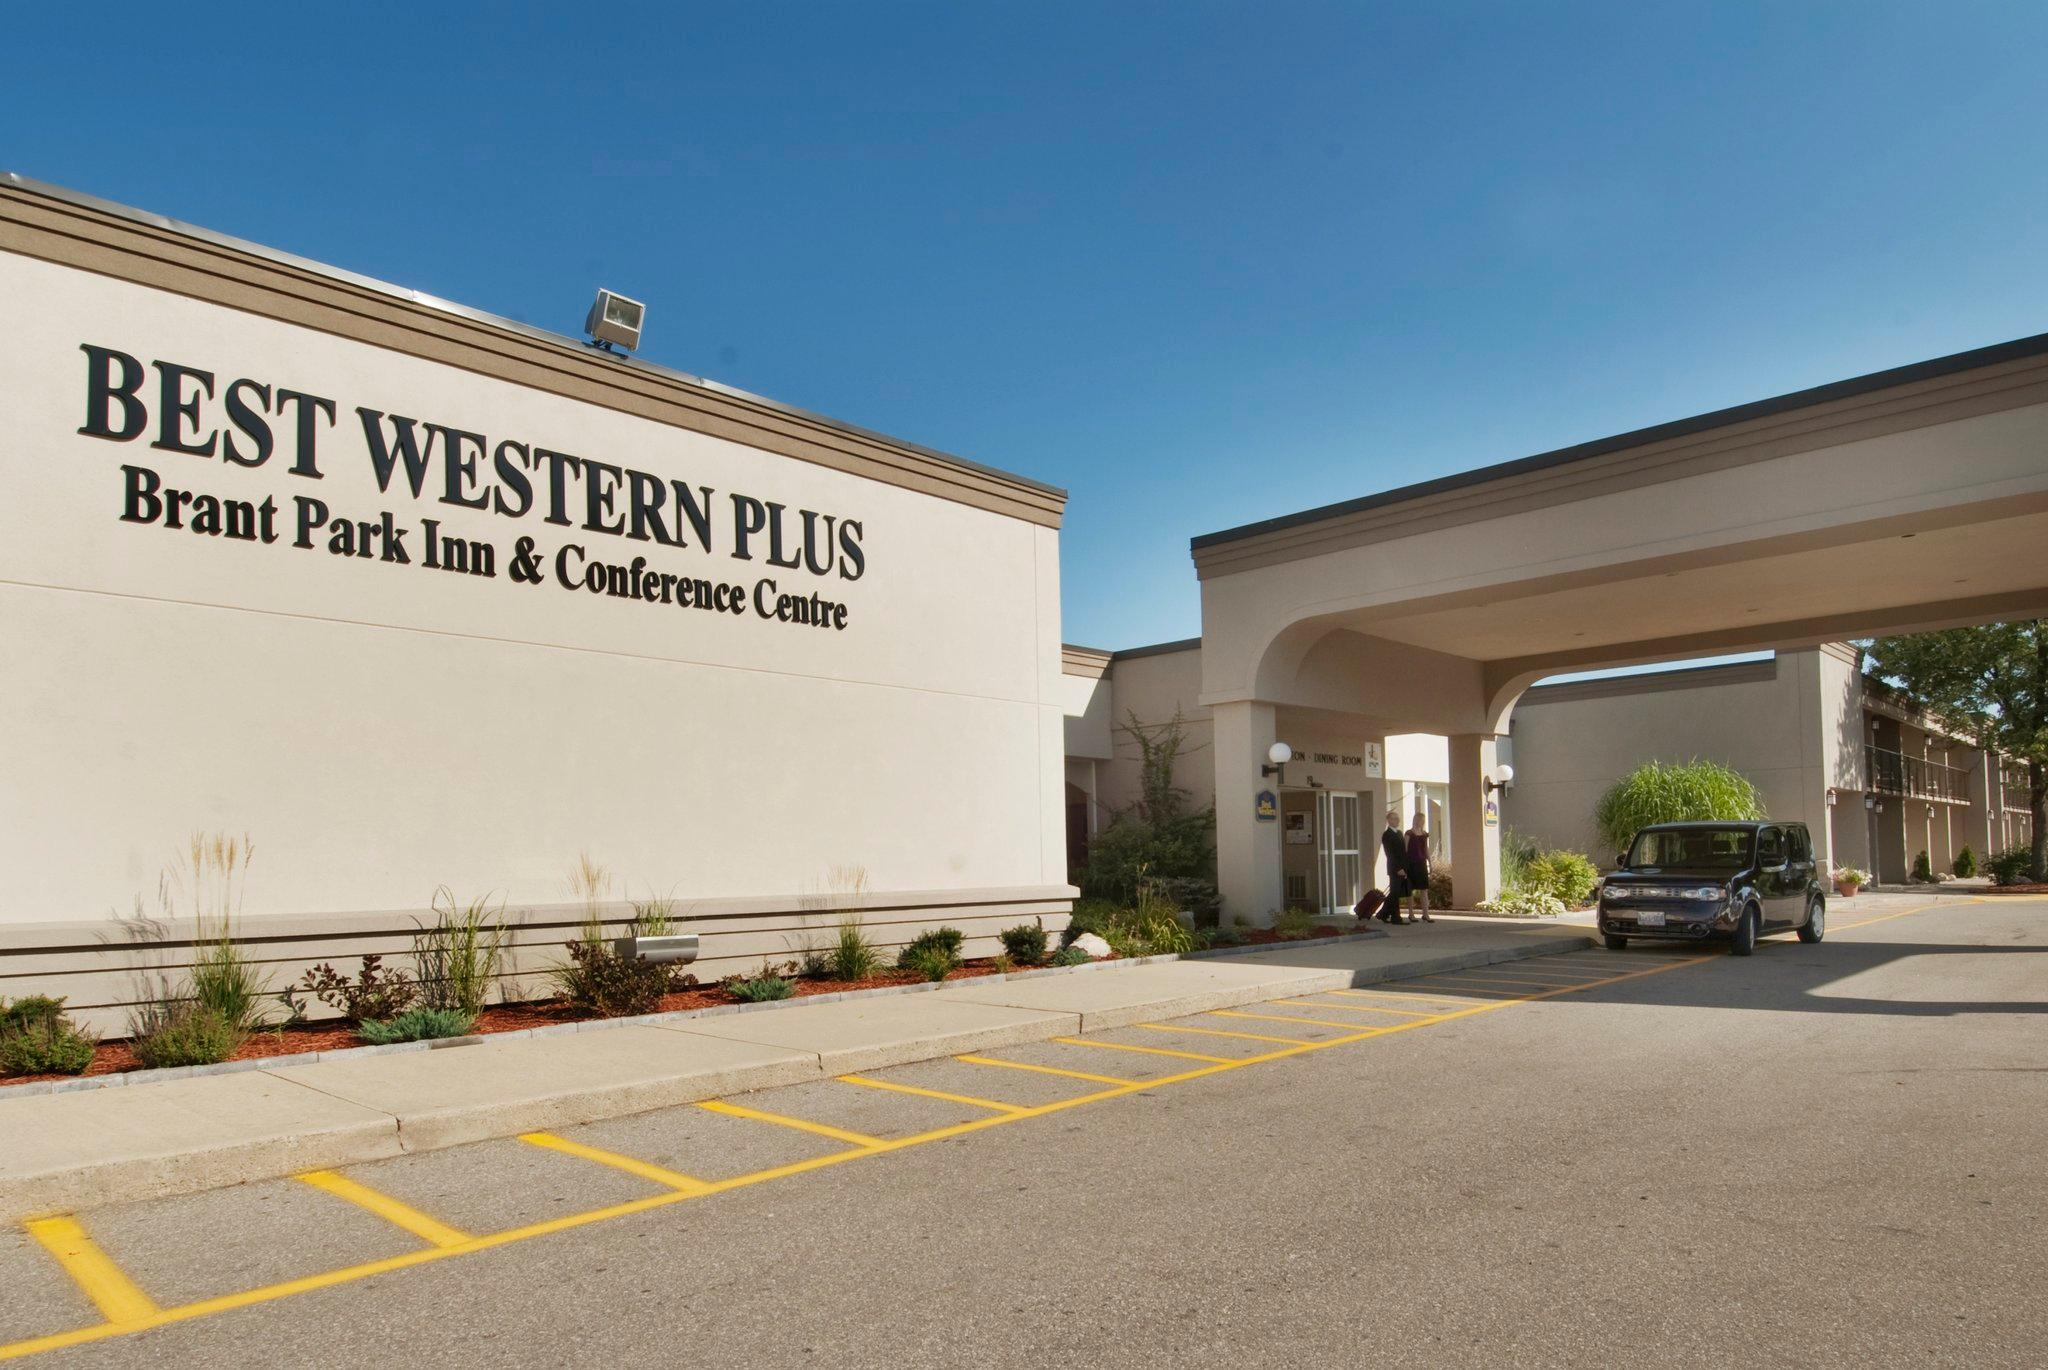 BEST WESTERN PLUS Brant Park Inn & Conference Centre